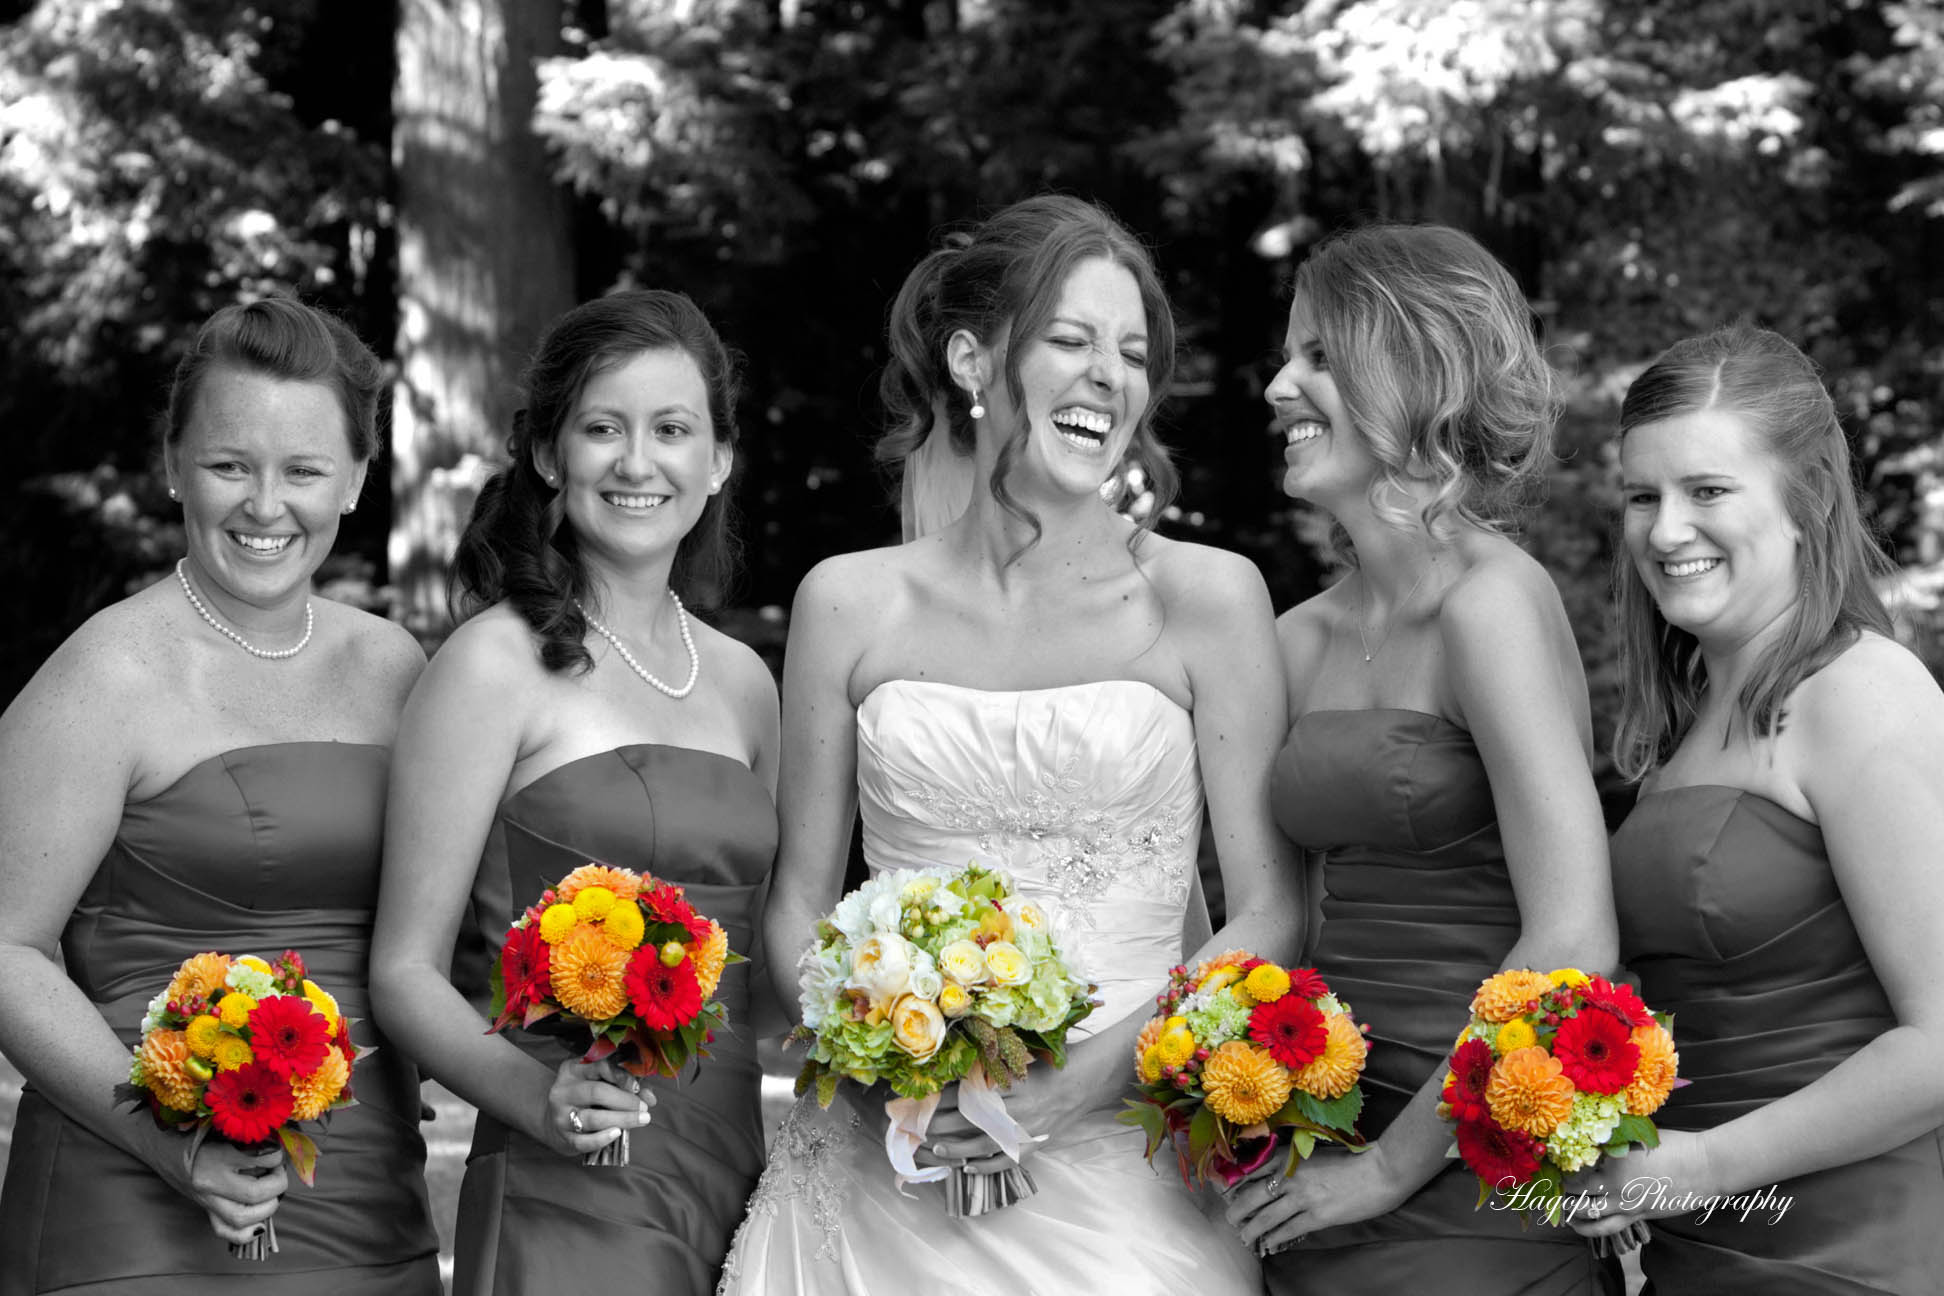 bw and color mix photo of the bride with her bridesmaids